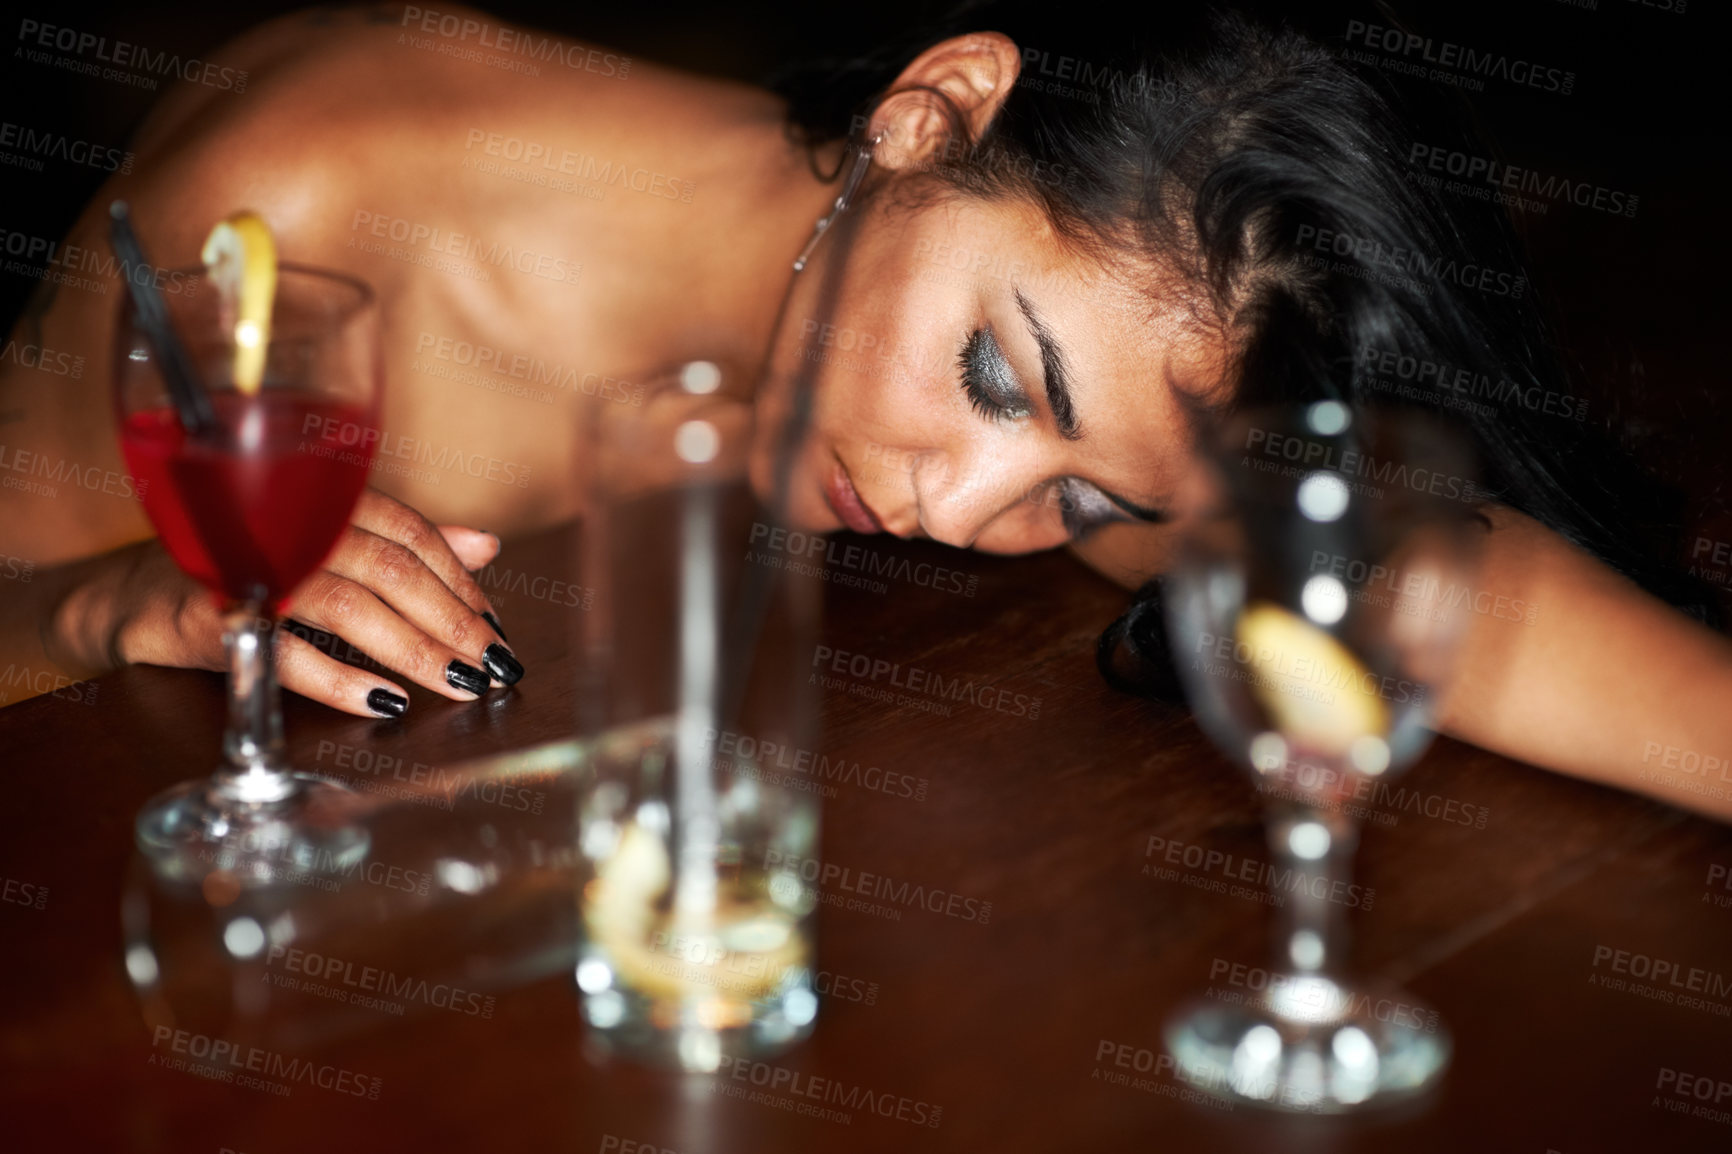 Buy stock photo A drunk young girl passed out at the bar surrounded by half-finished drinks